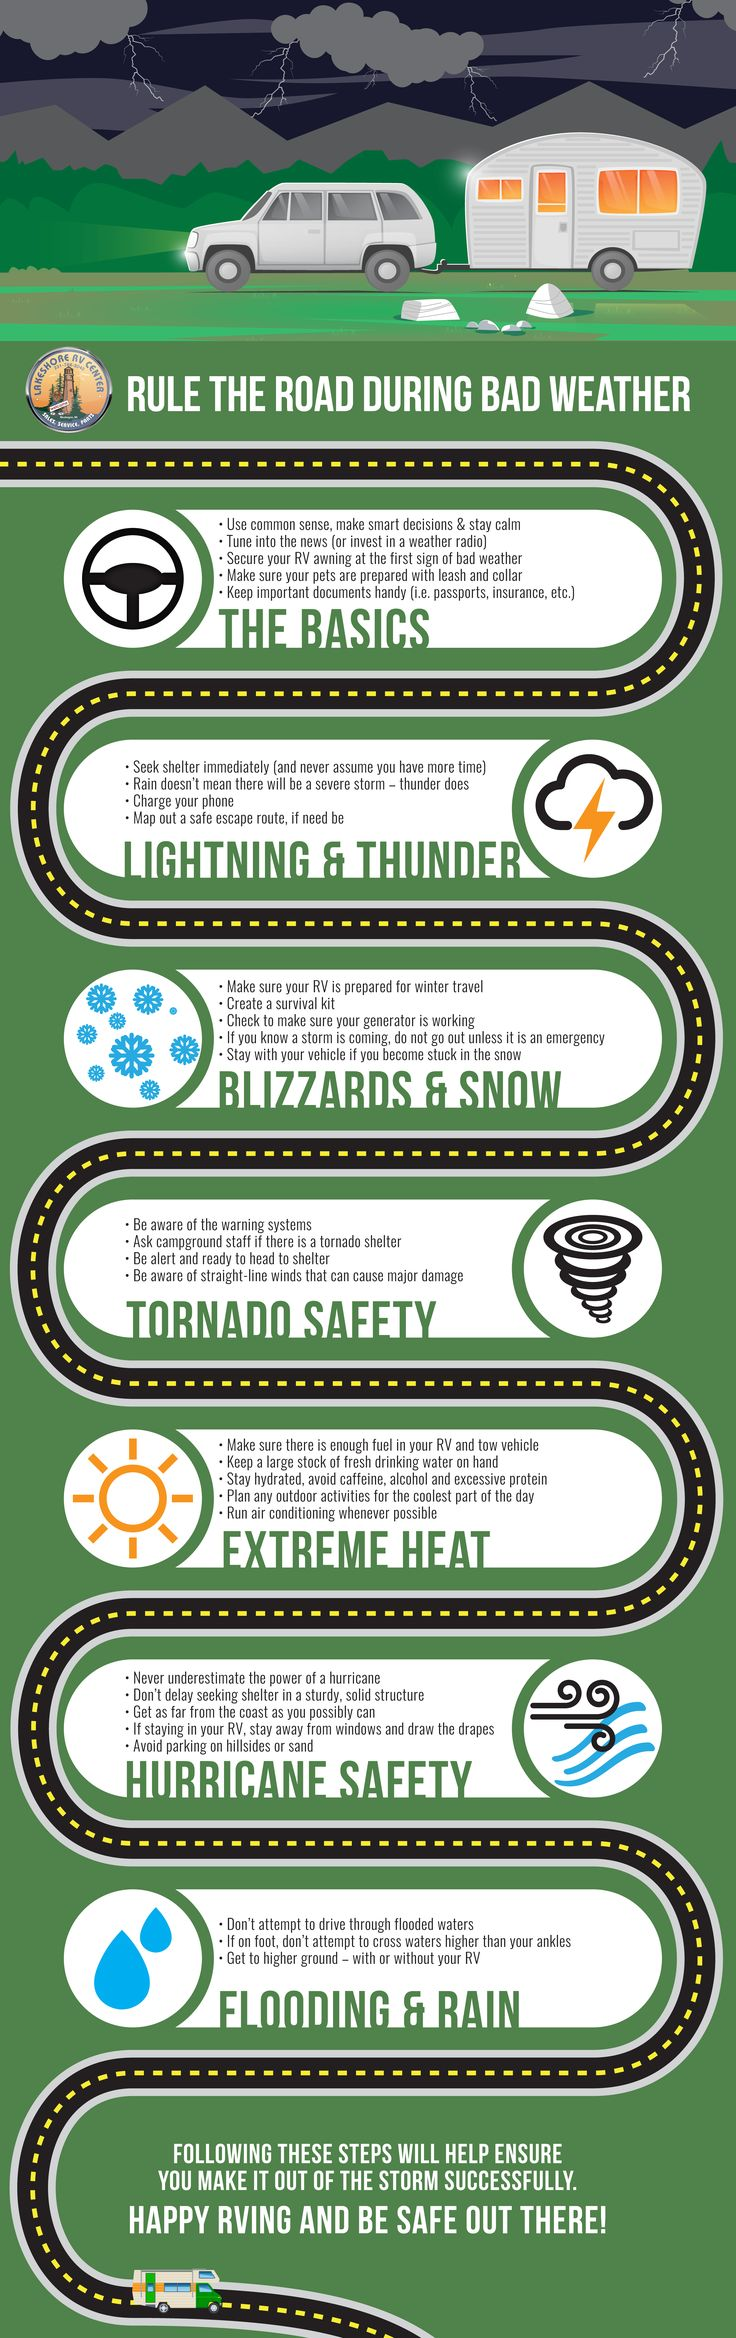 This complete guide for RVing in bad weather will help you to prepare and help lead you to safety, no matter what Mother Nature has in store!